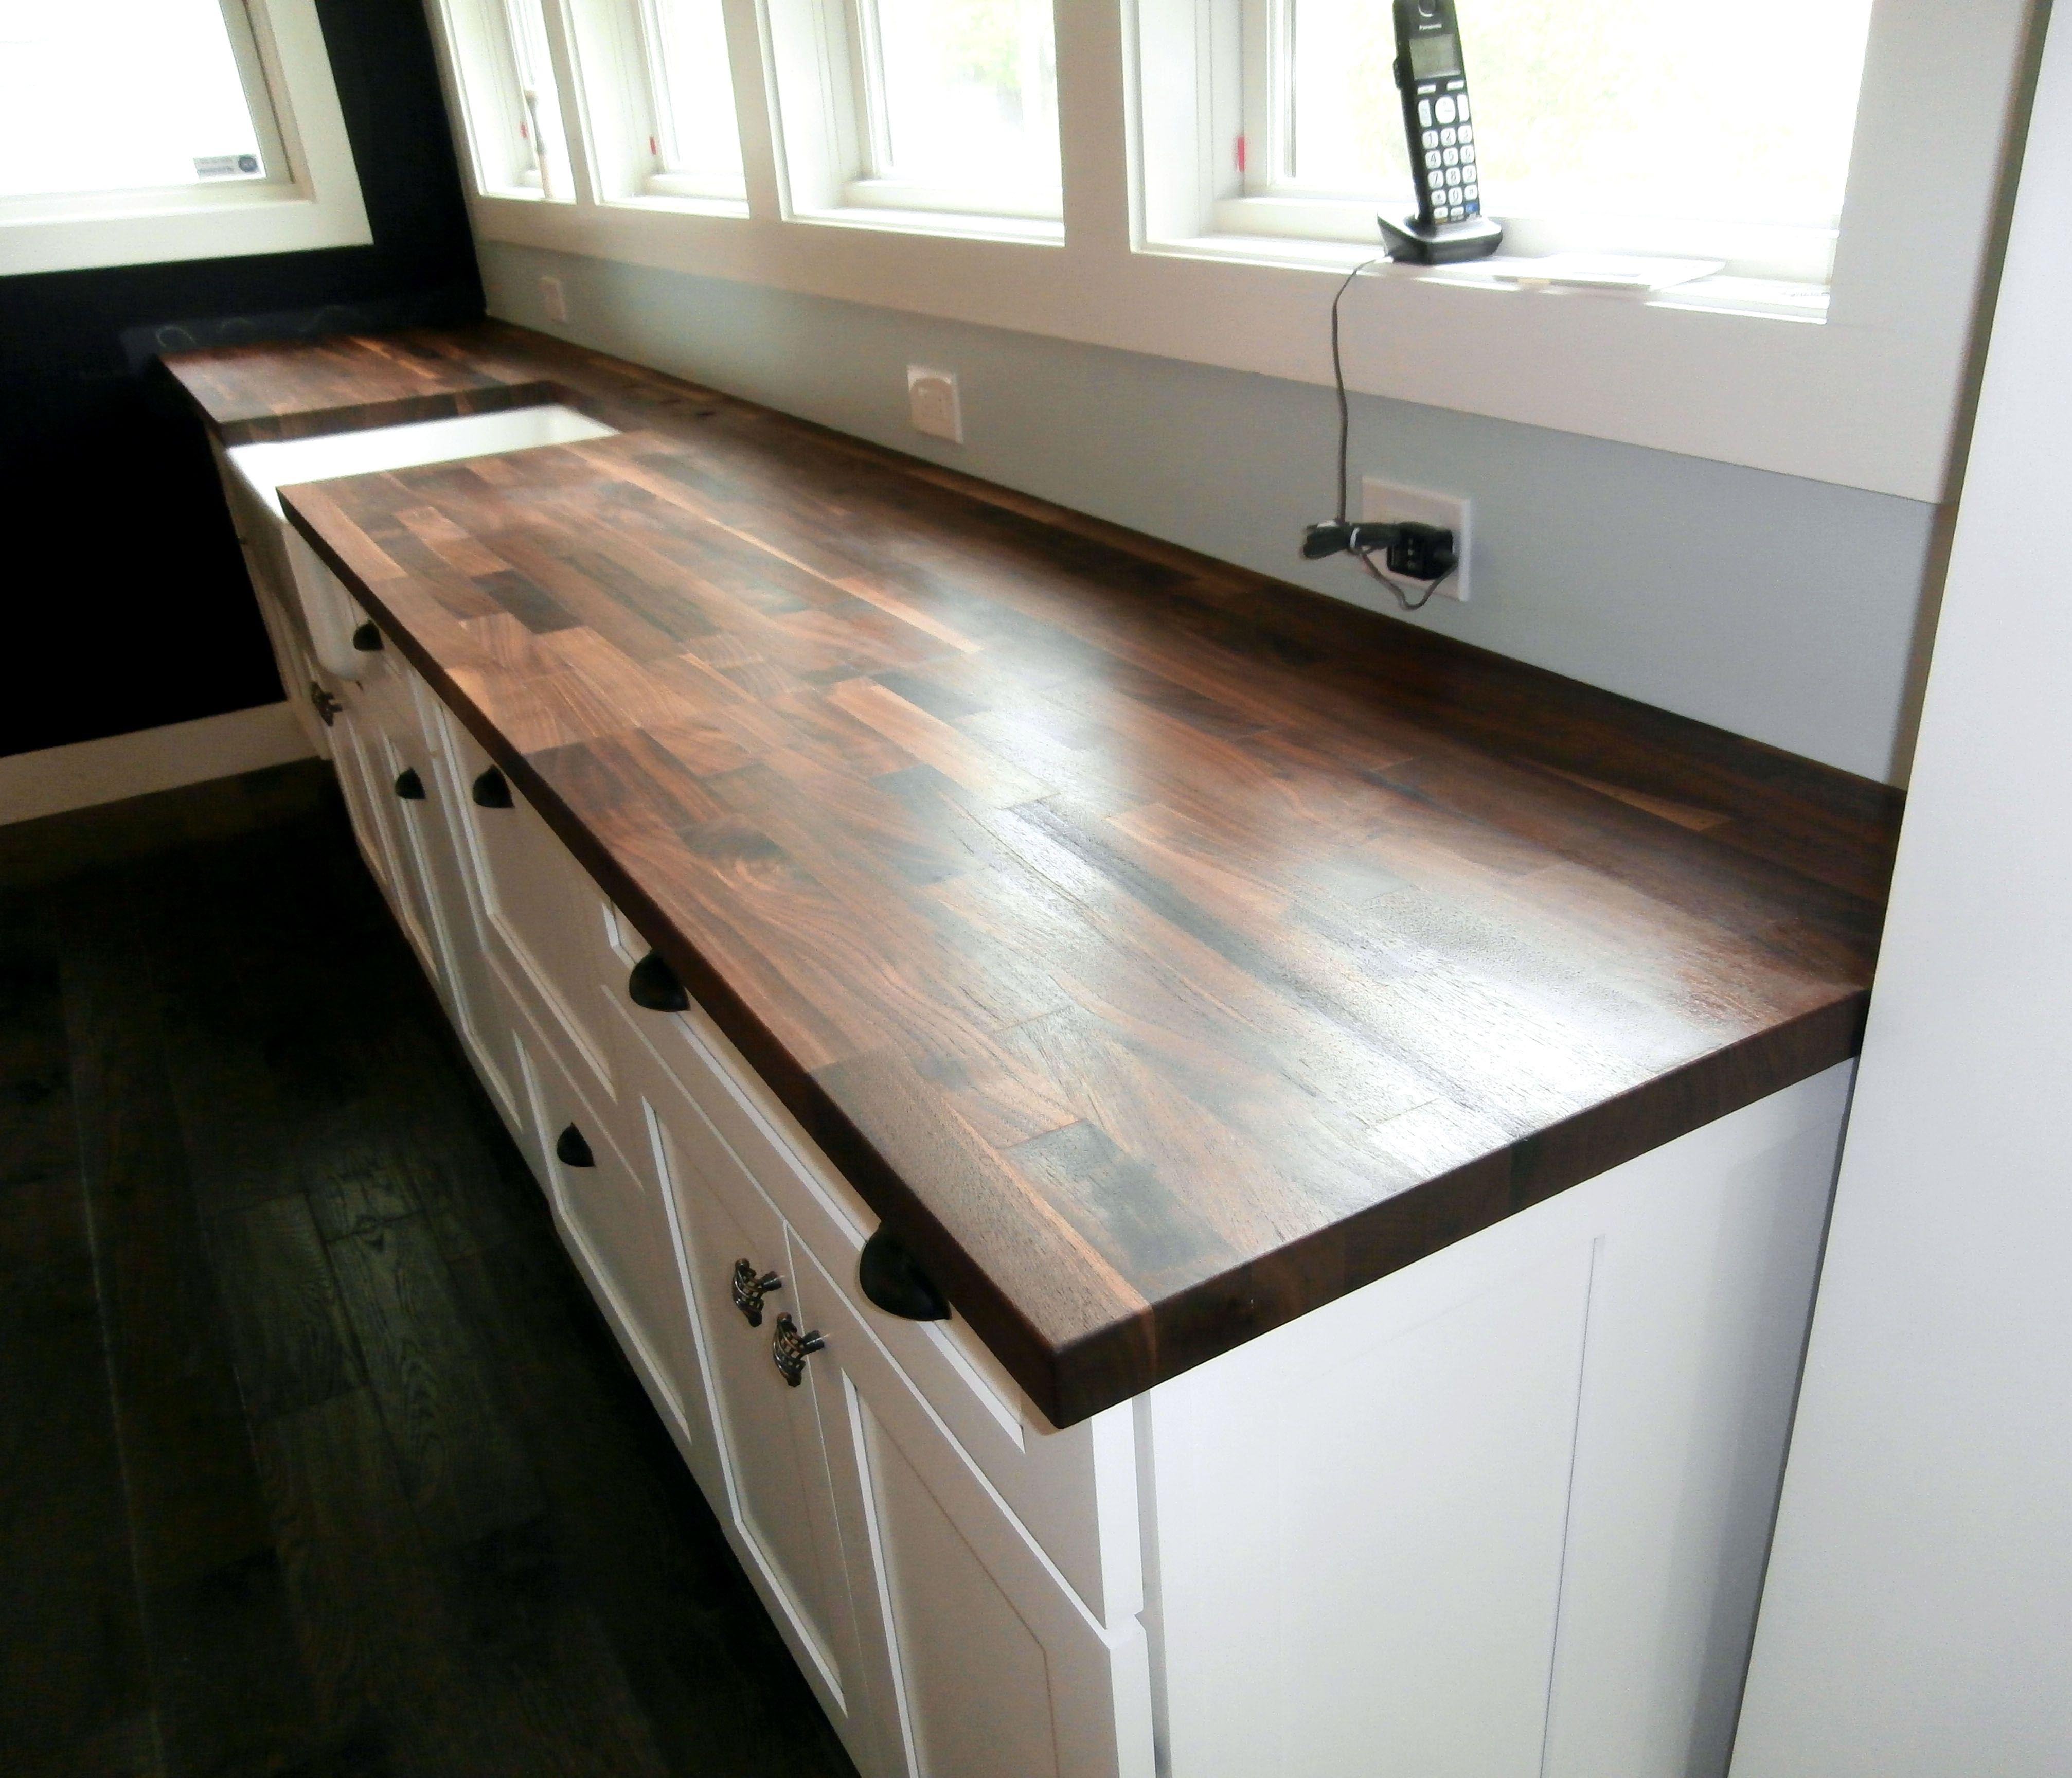 Walnut Eco Pro Countertop Designed By And Made For Millbrook Cabinetry Design In